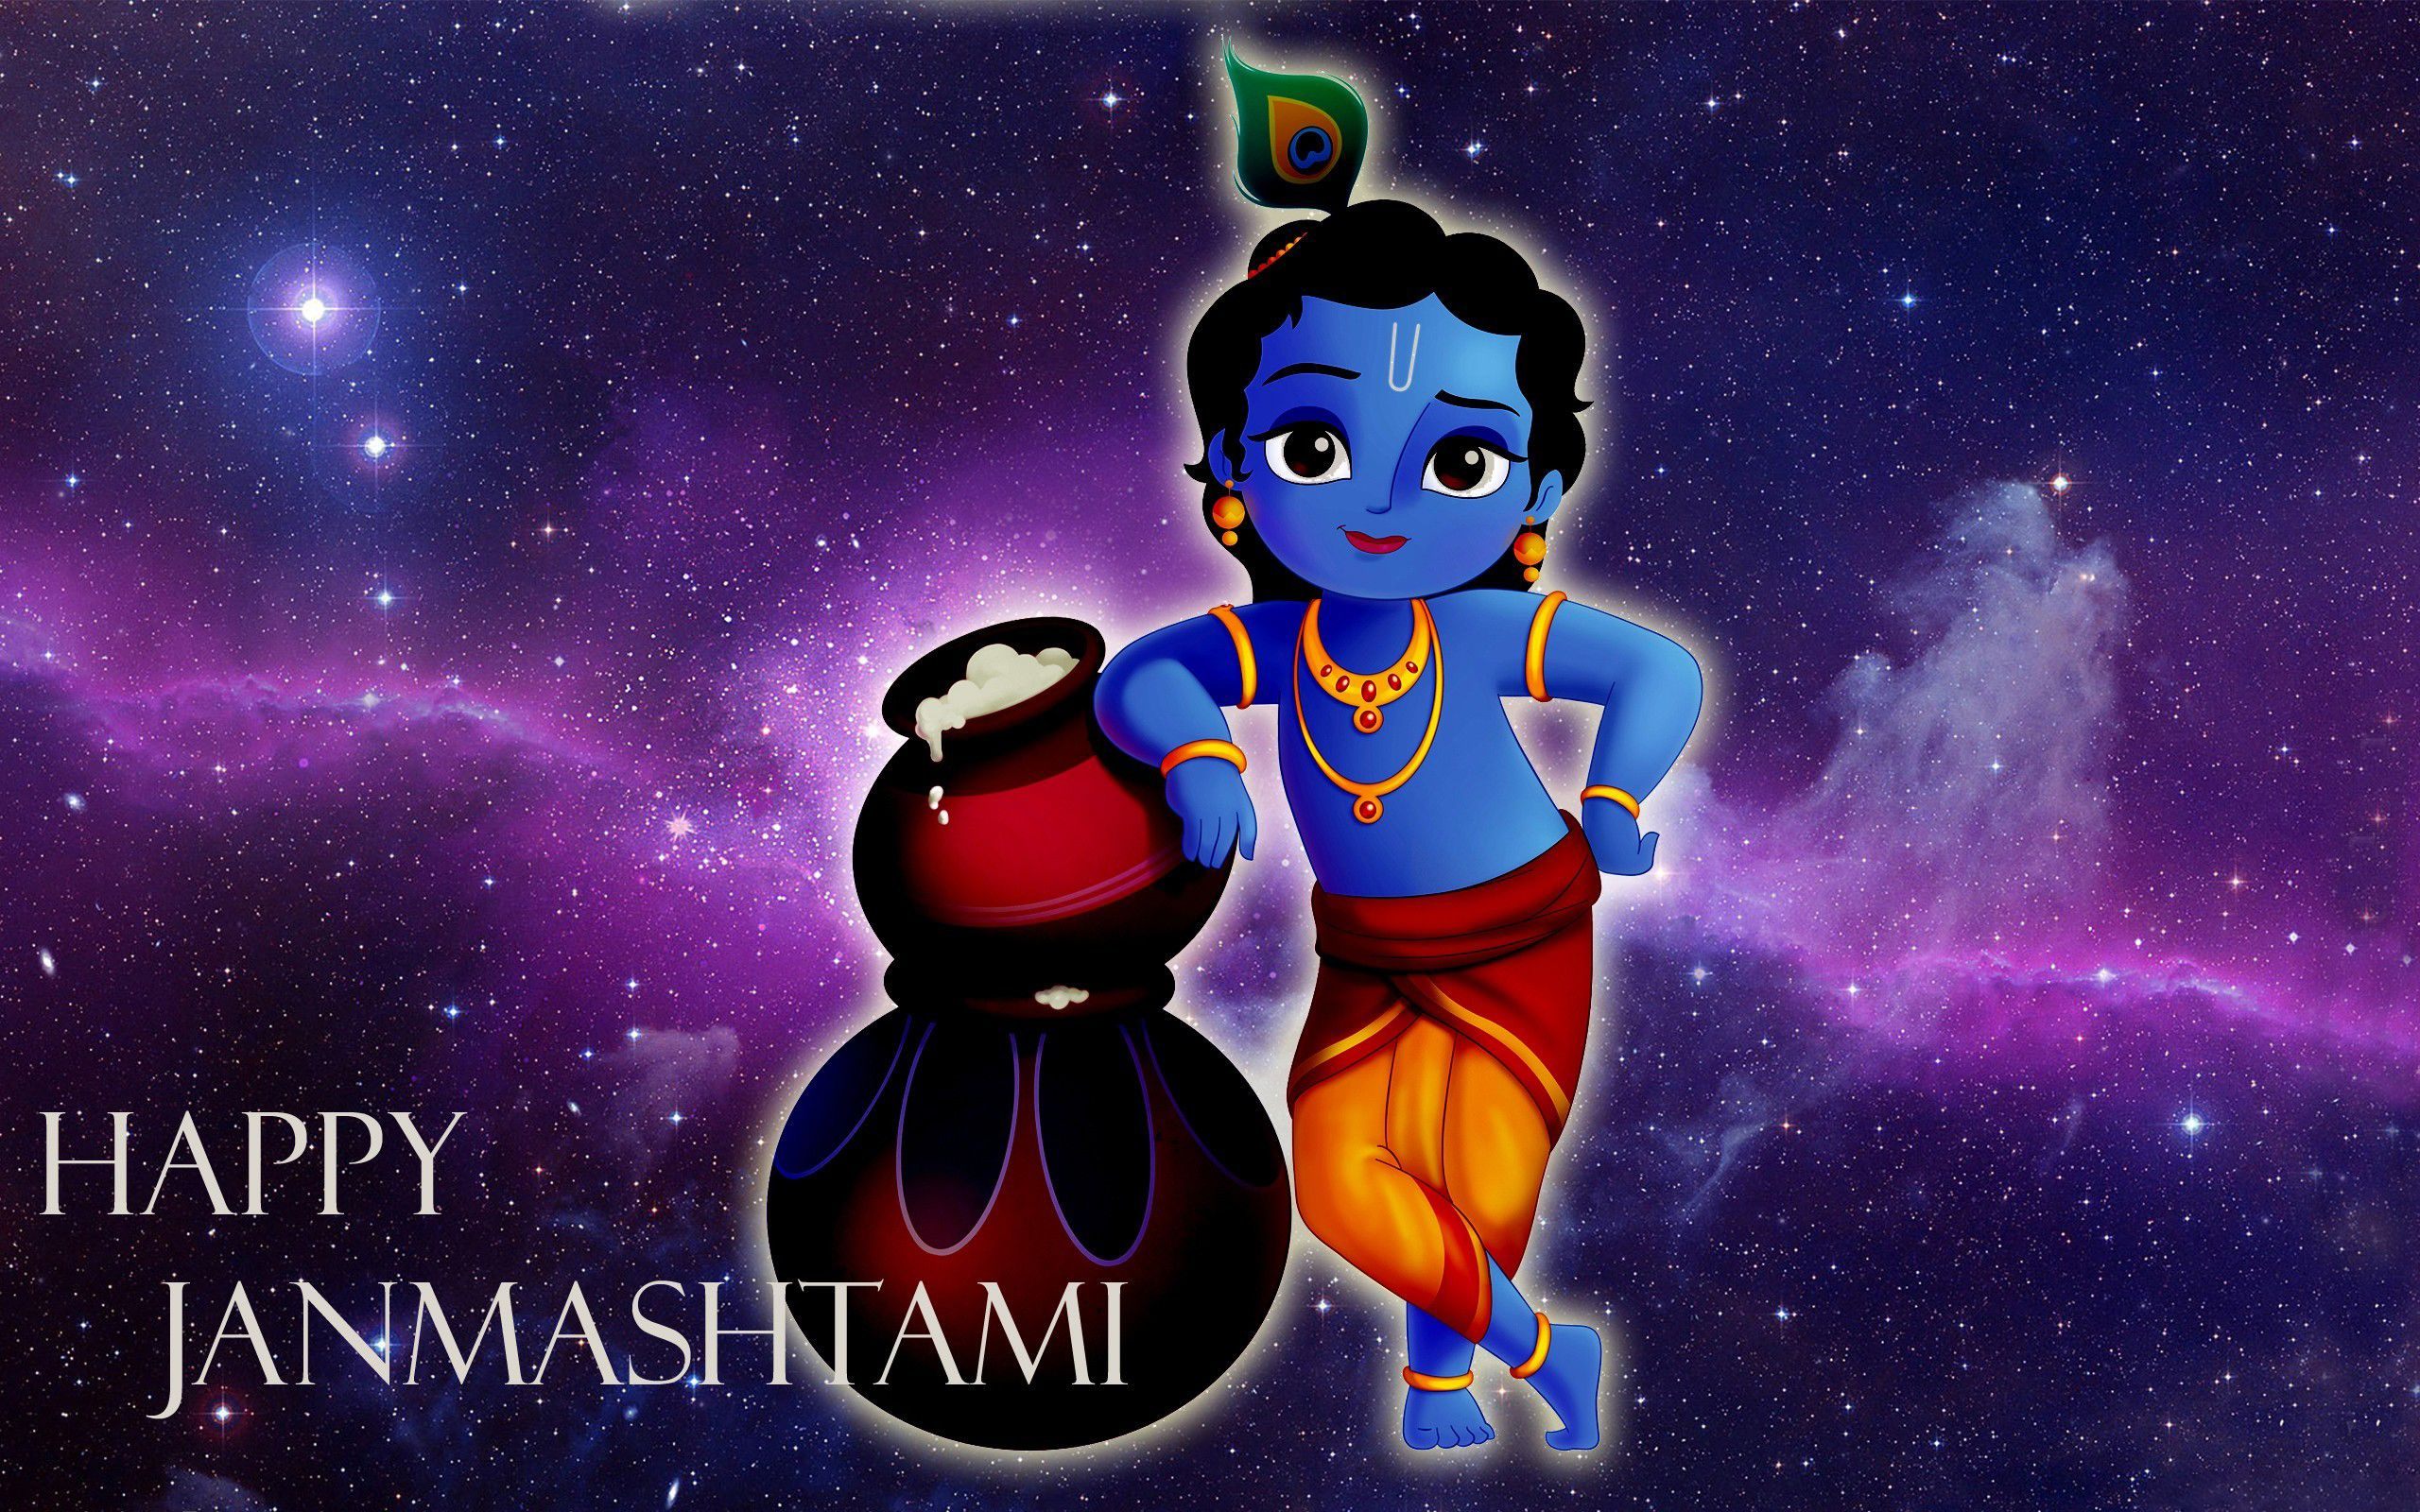 Free Download 100 Pure Janmashtami Hd Wallpapers Latest Photoshoots Beautiful Images And More F Happy Janmashtami Janmashtami Wallpapers Krishna Janmashtami